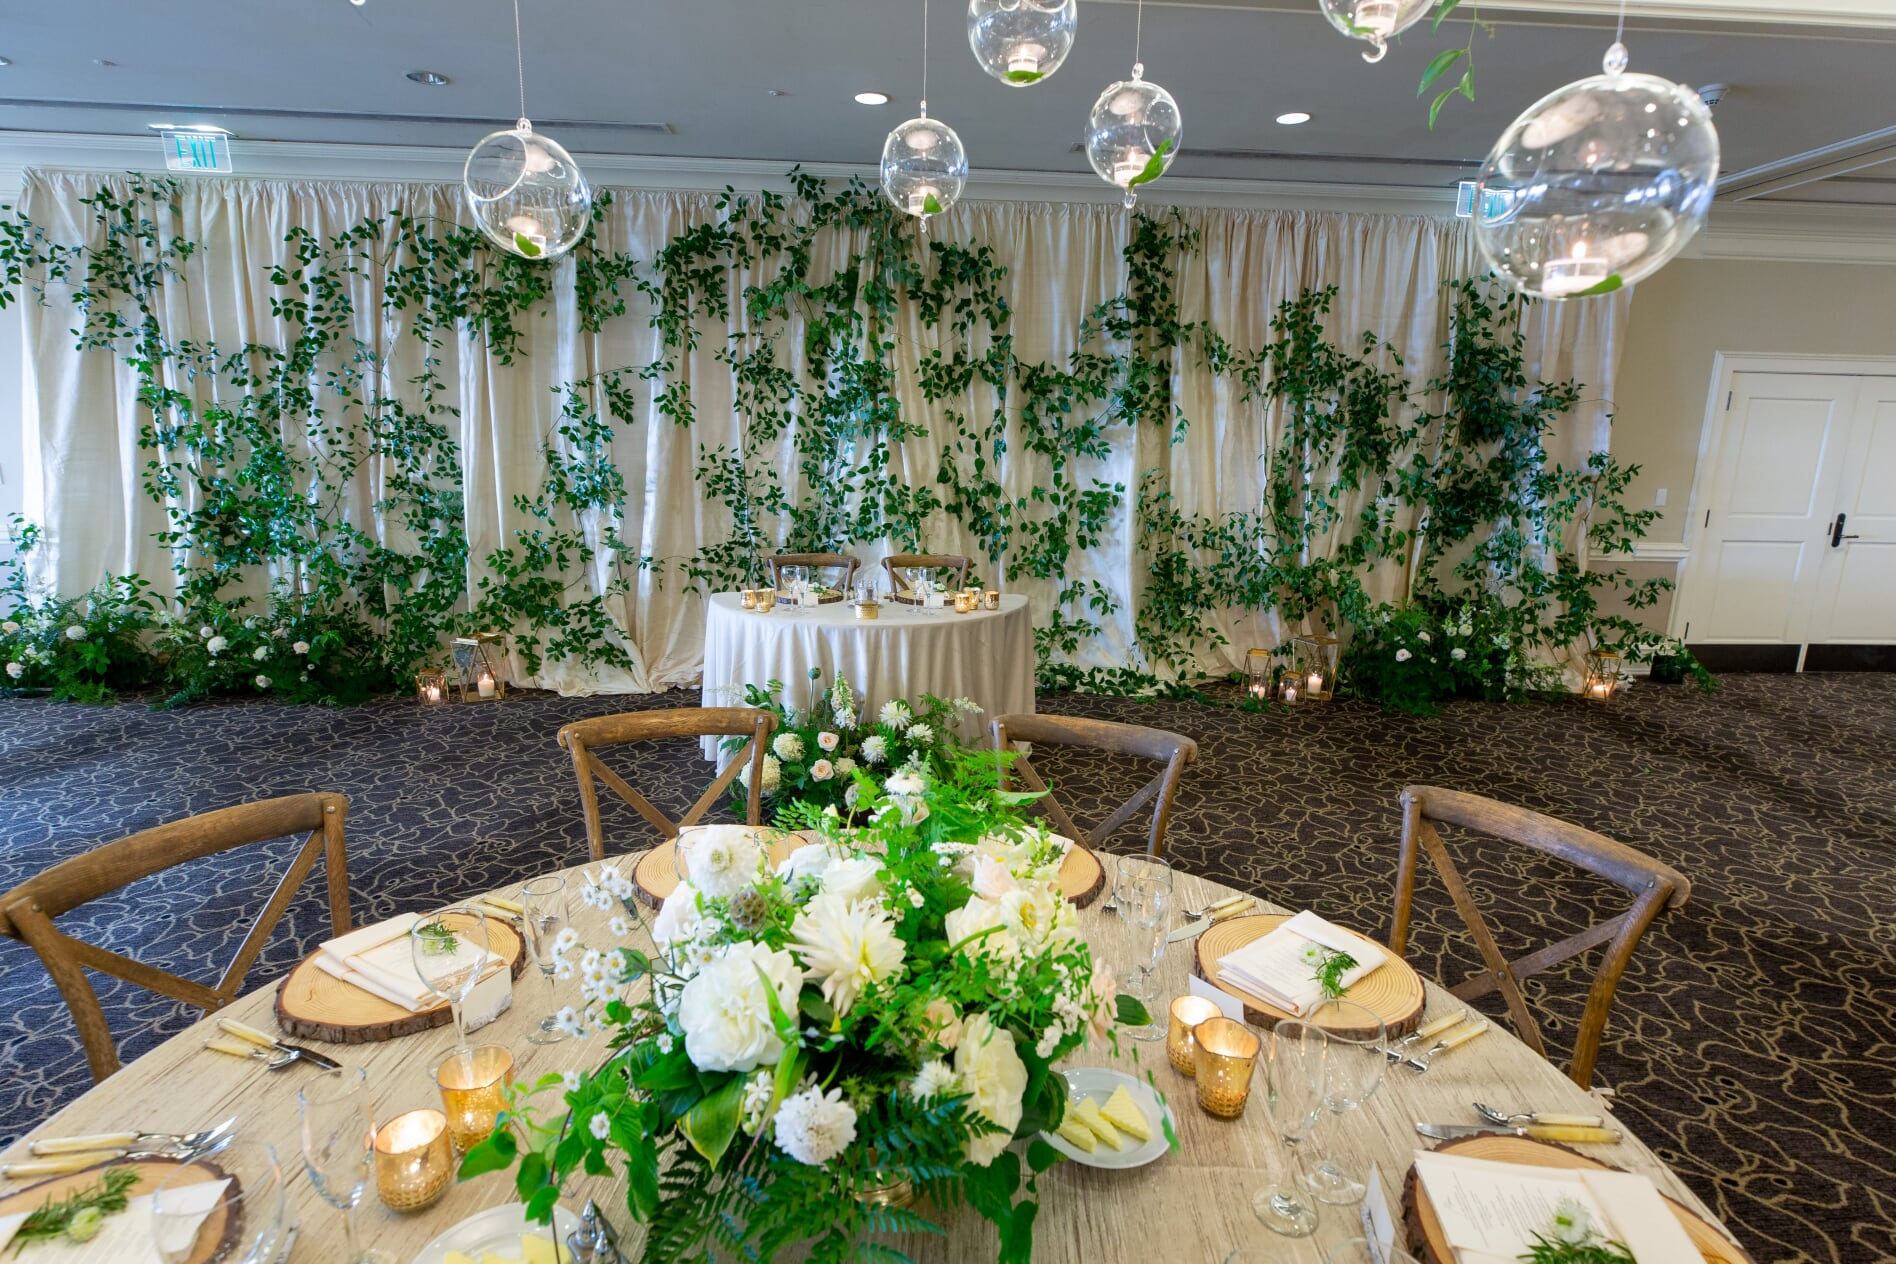 Sweetheart table with greenery backdrop, round table with white centerpiece